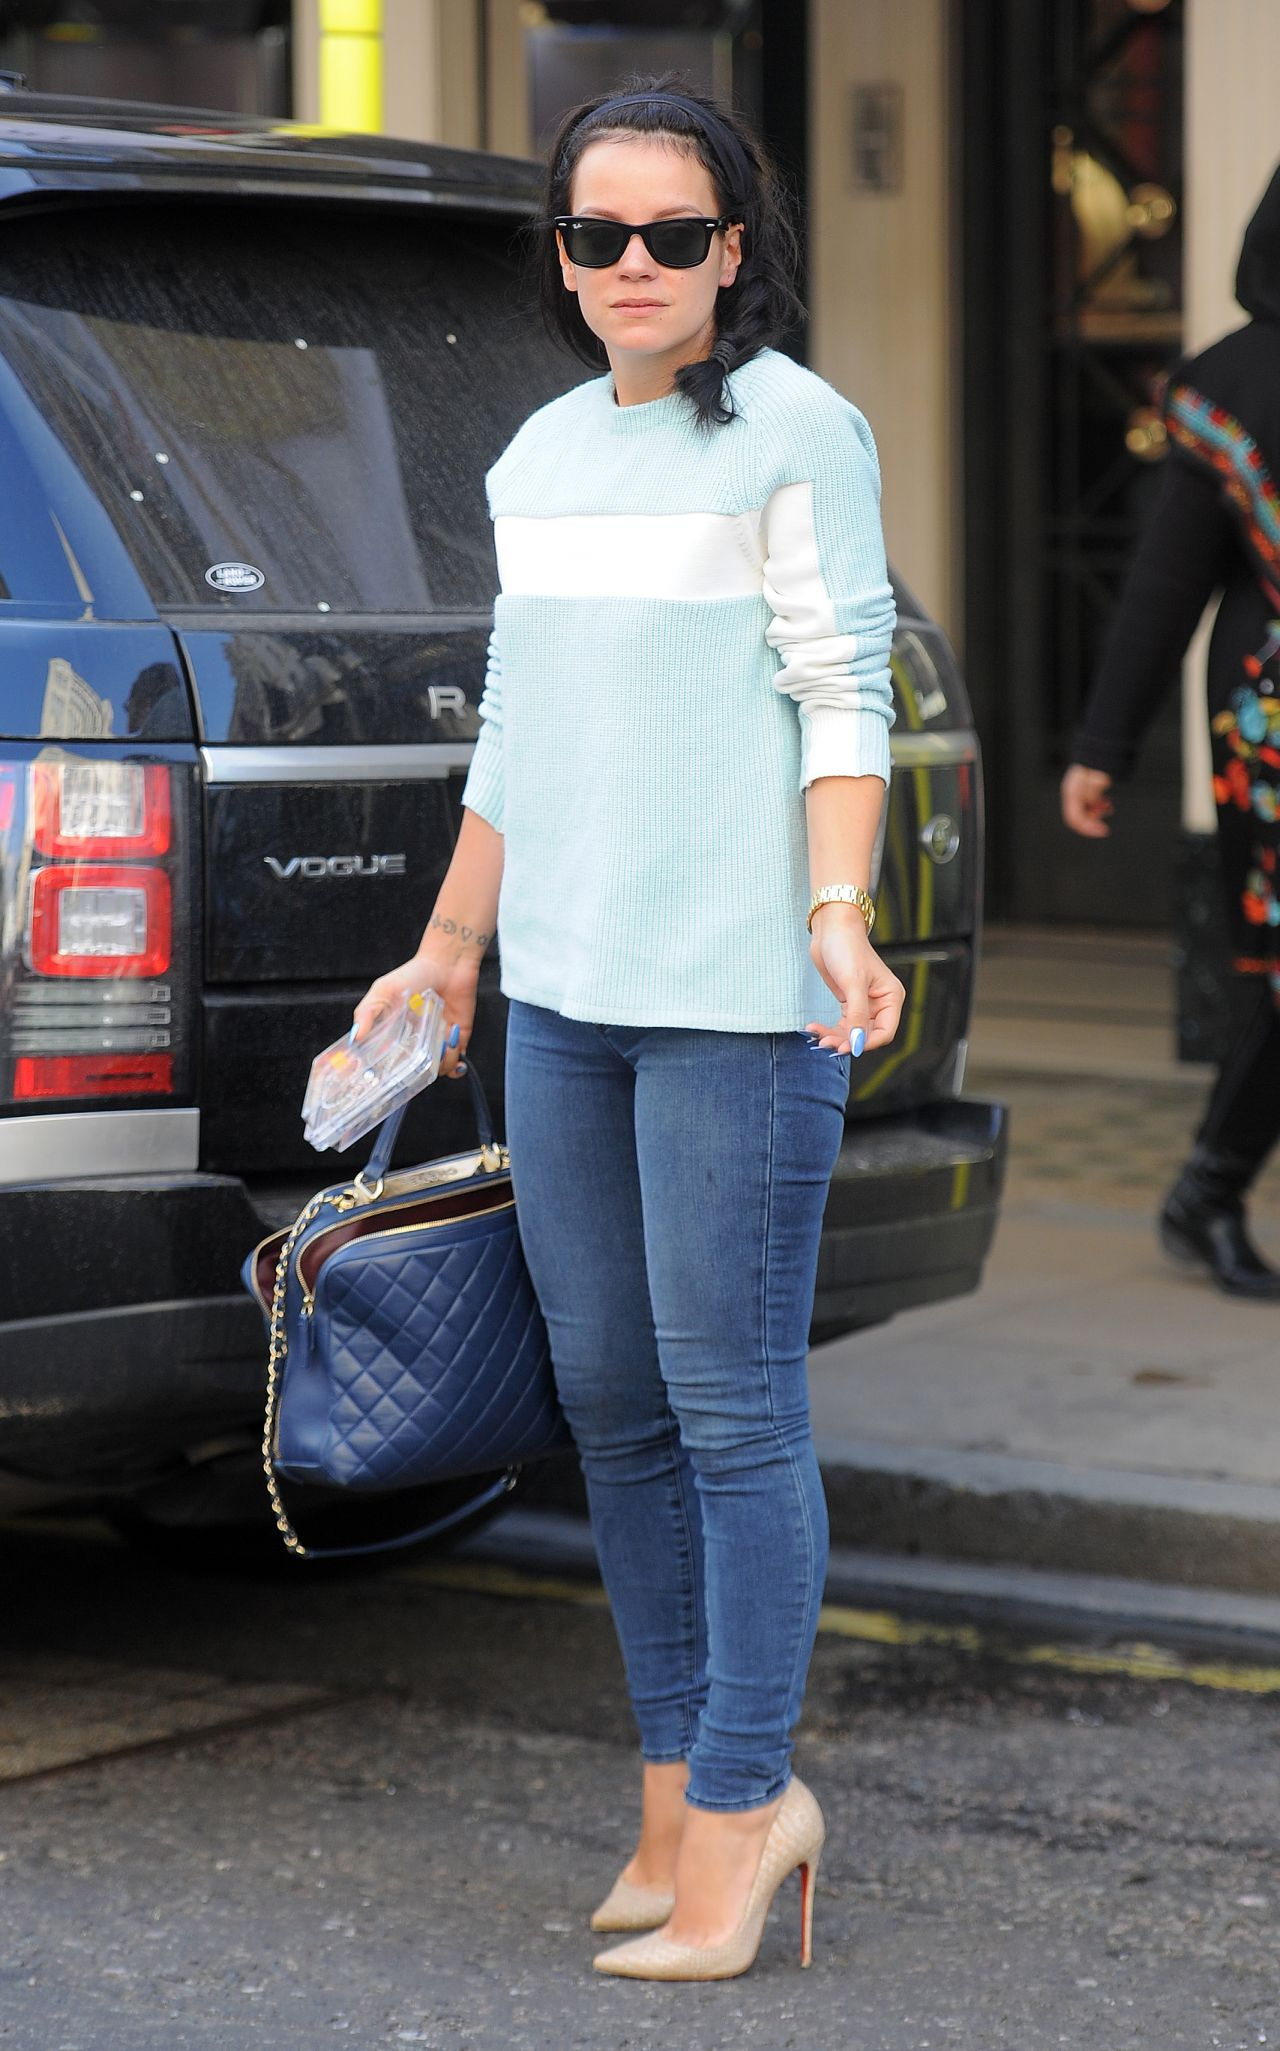 Lily Allenin in Jeans - Leaving the David Morris Jewellers in London